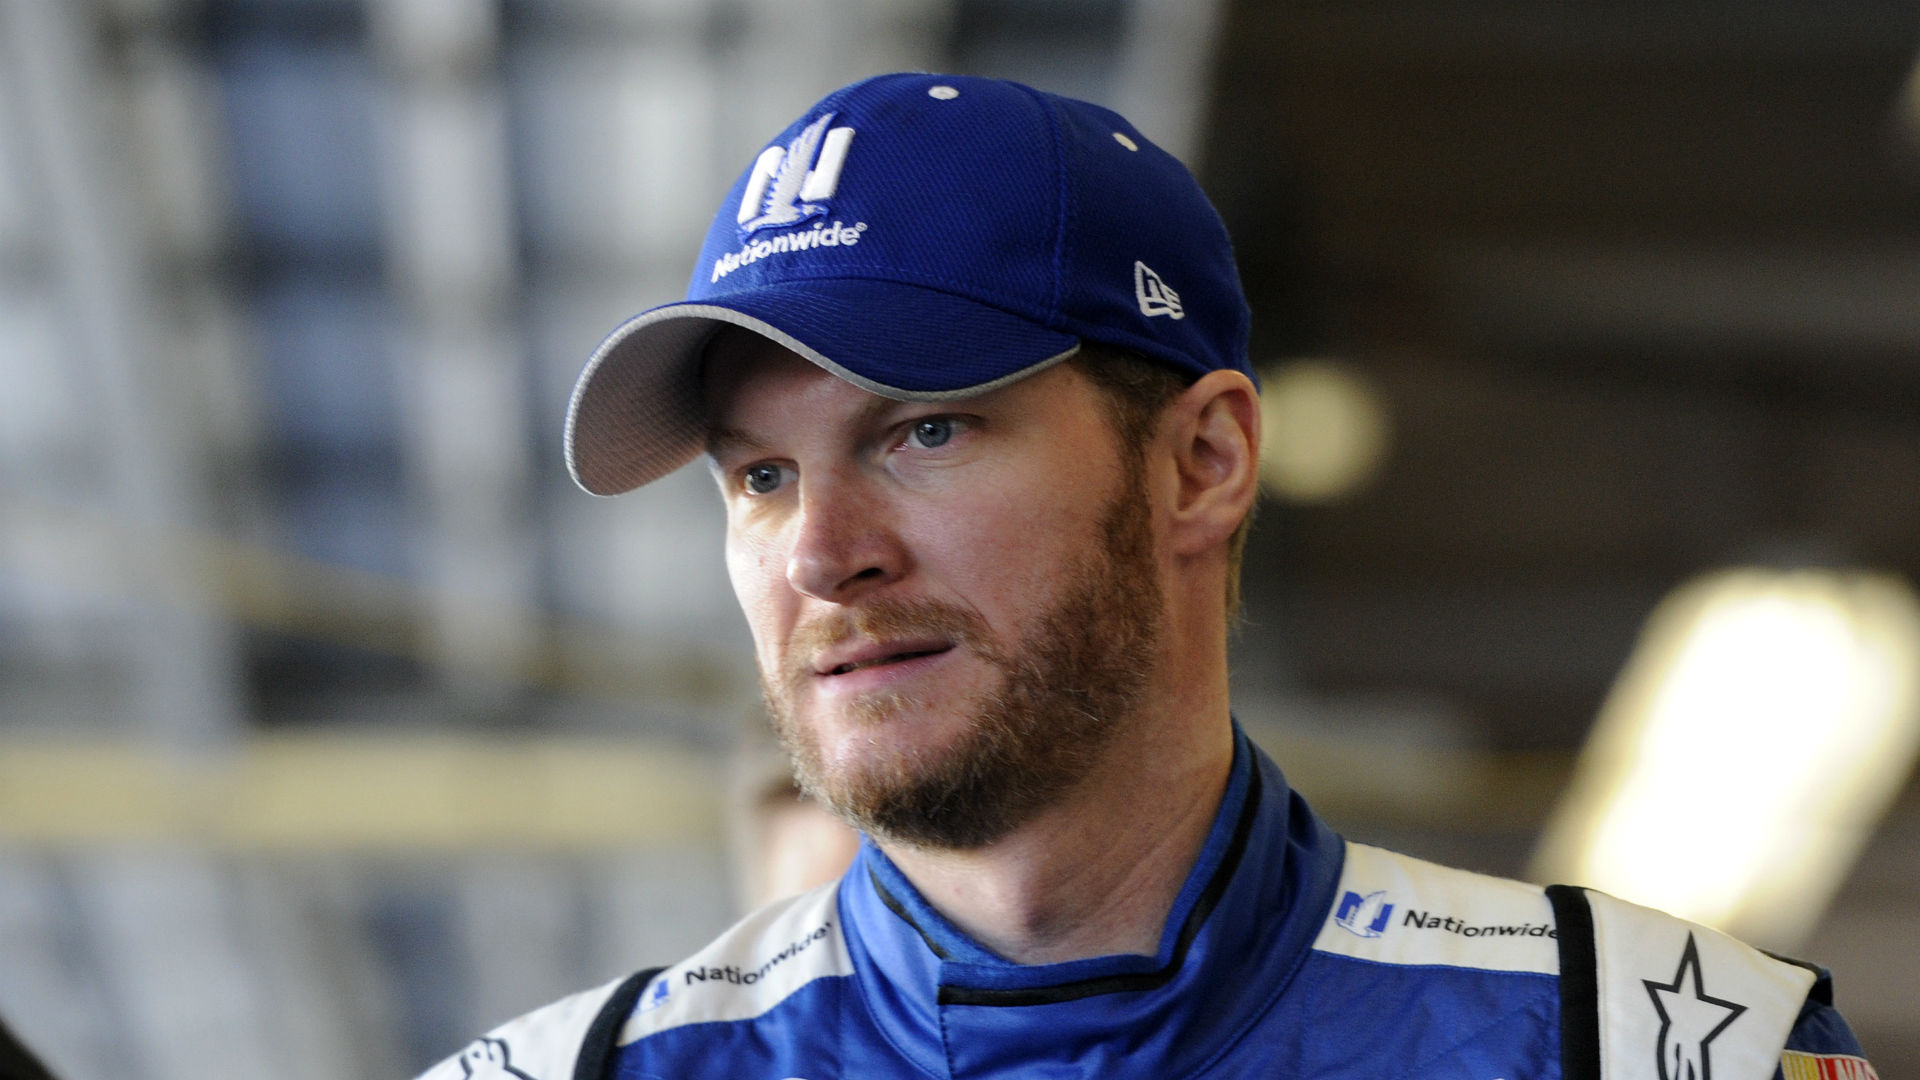 Daytona 500 odds and props – Earnhardt, Johnson garner co-favorite status